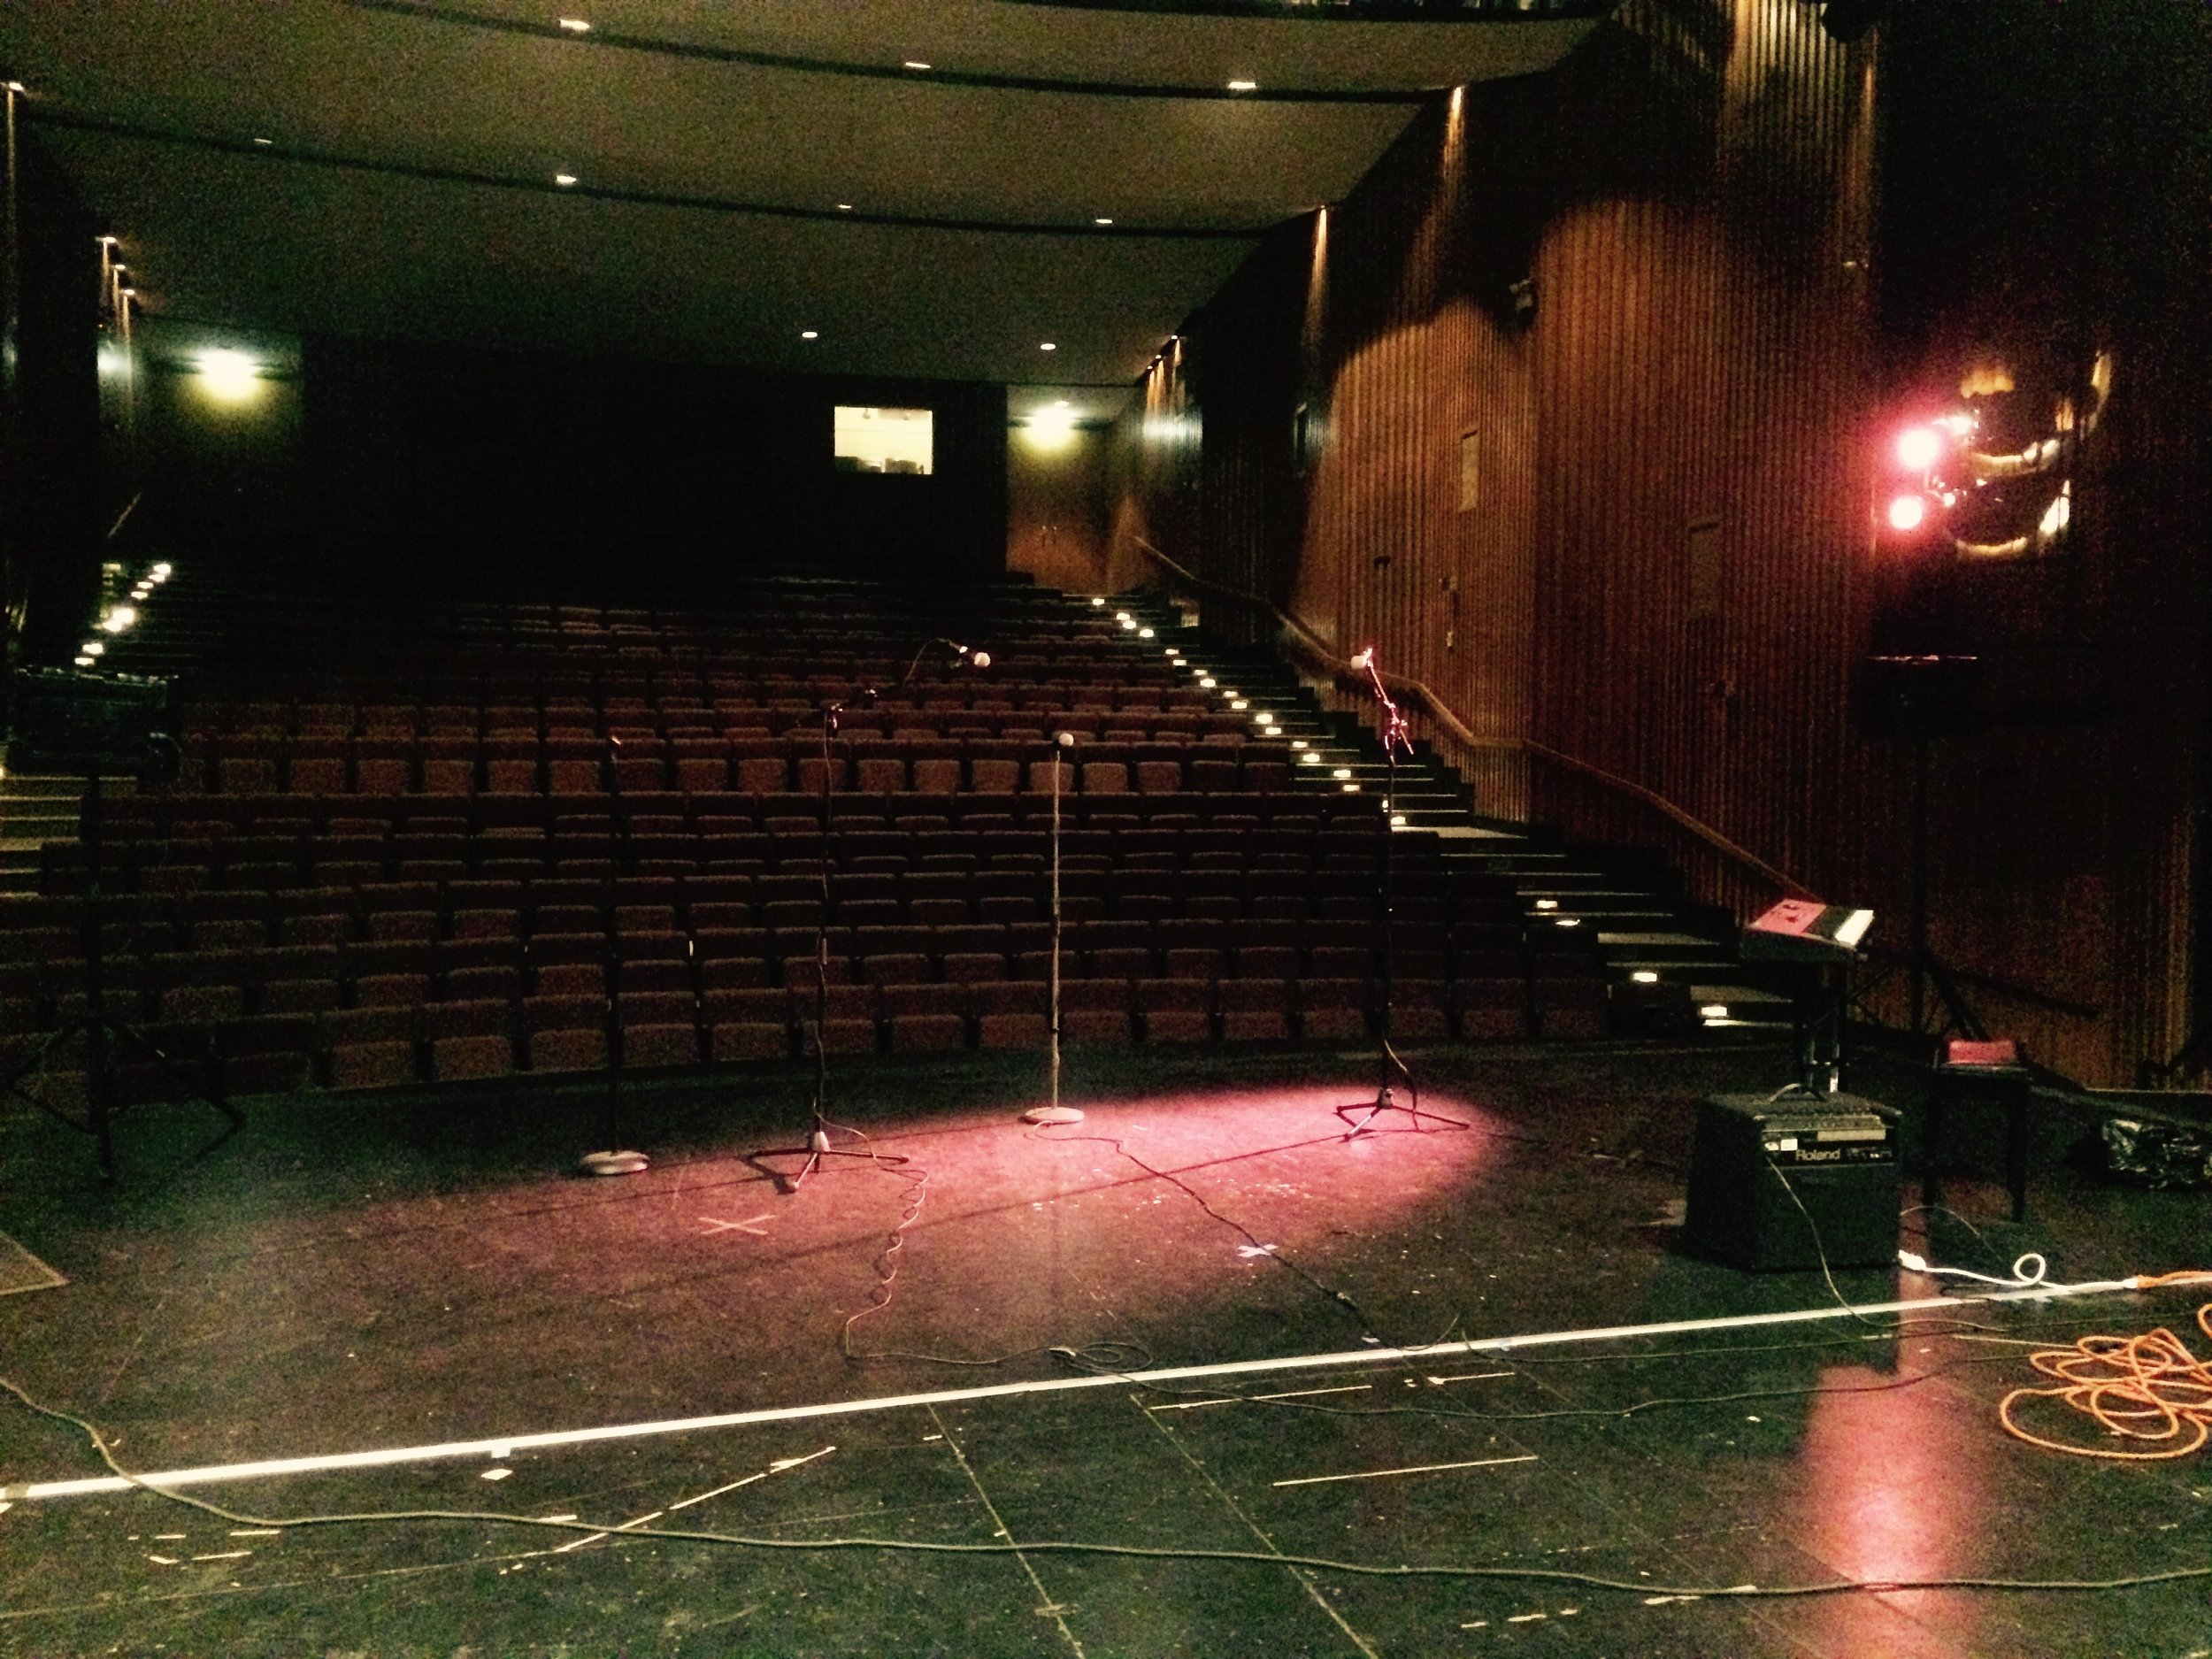 Working on sound and lighting       Mullady Theatre                                 April 6th, 2015